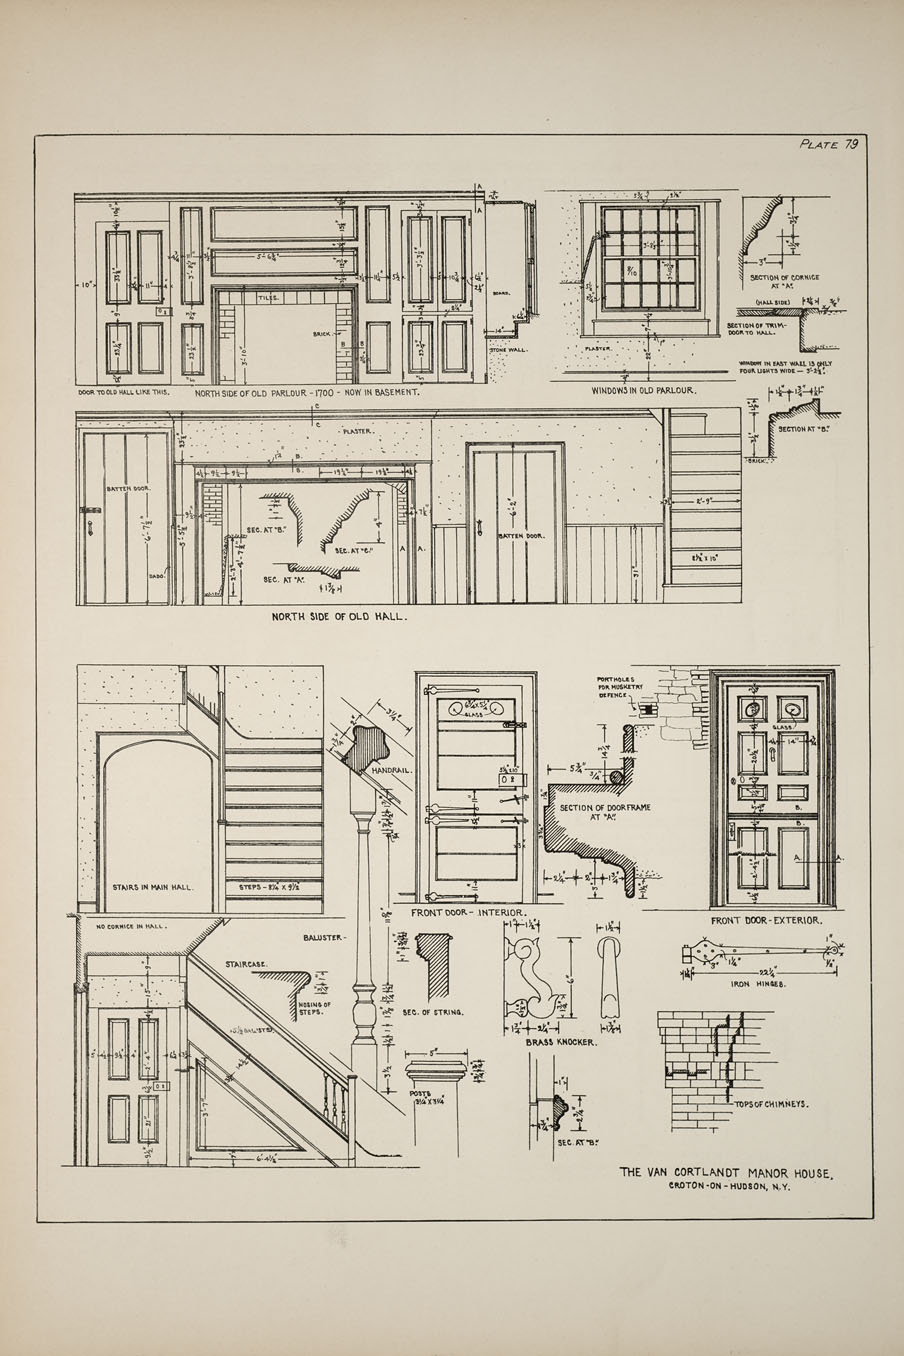 Decorative Arts: Measured drawings of some colonial and ... on georgian house plans front elevations, traditional house plans, english georgian house plans, georgian revival house plans, spanish eclectic house plans, country house plans, brick georgian house plans, contemporary house plans, european house plans, tudor house plans, georgian home plans, floor plans, southern house plans, georgian style house plans, original georgian house plans, french house plans, ranch house plans, craftsman house plans, small house plans, georgian mansion house plans,